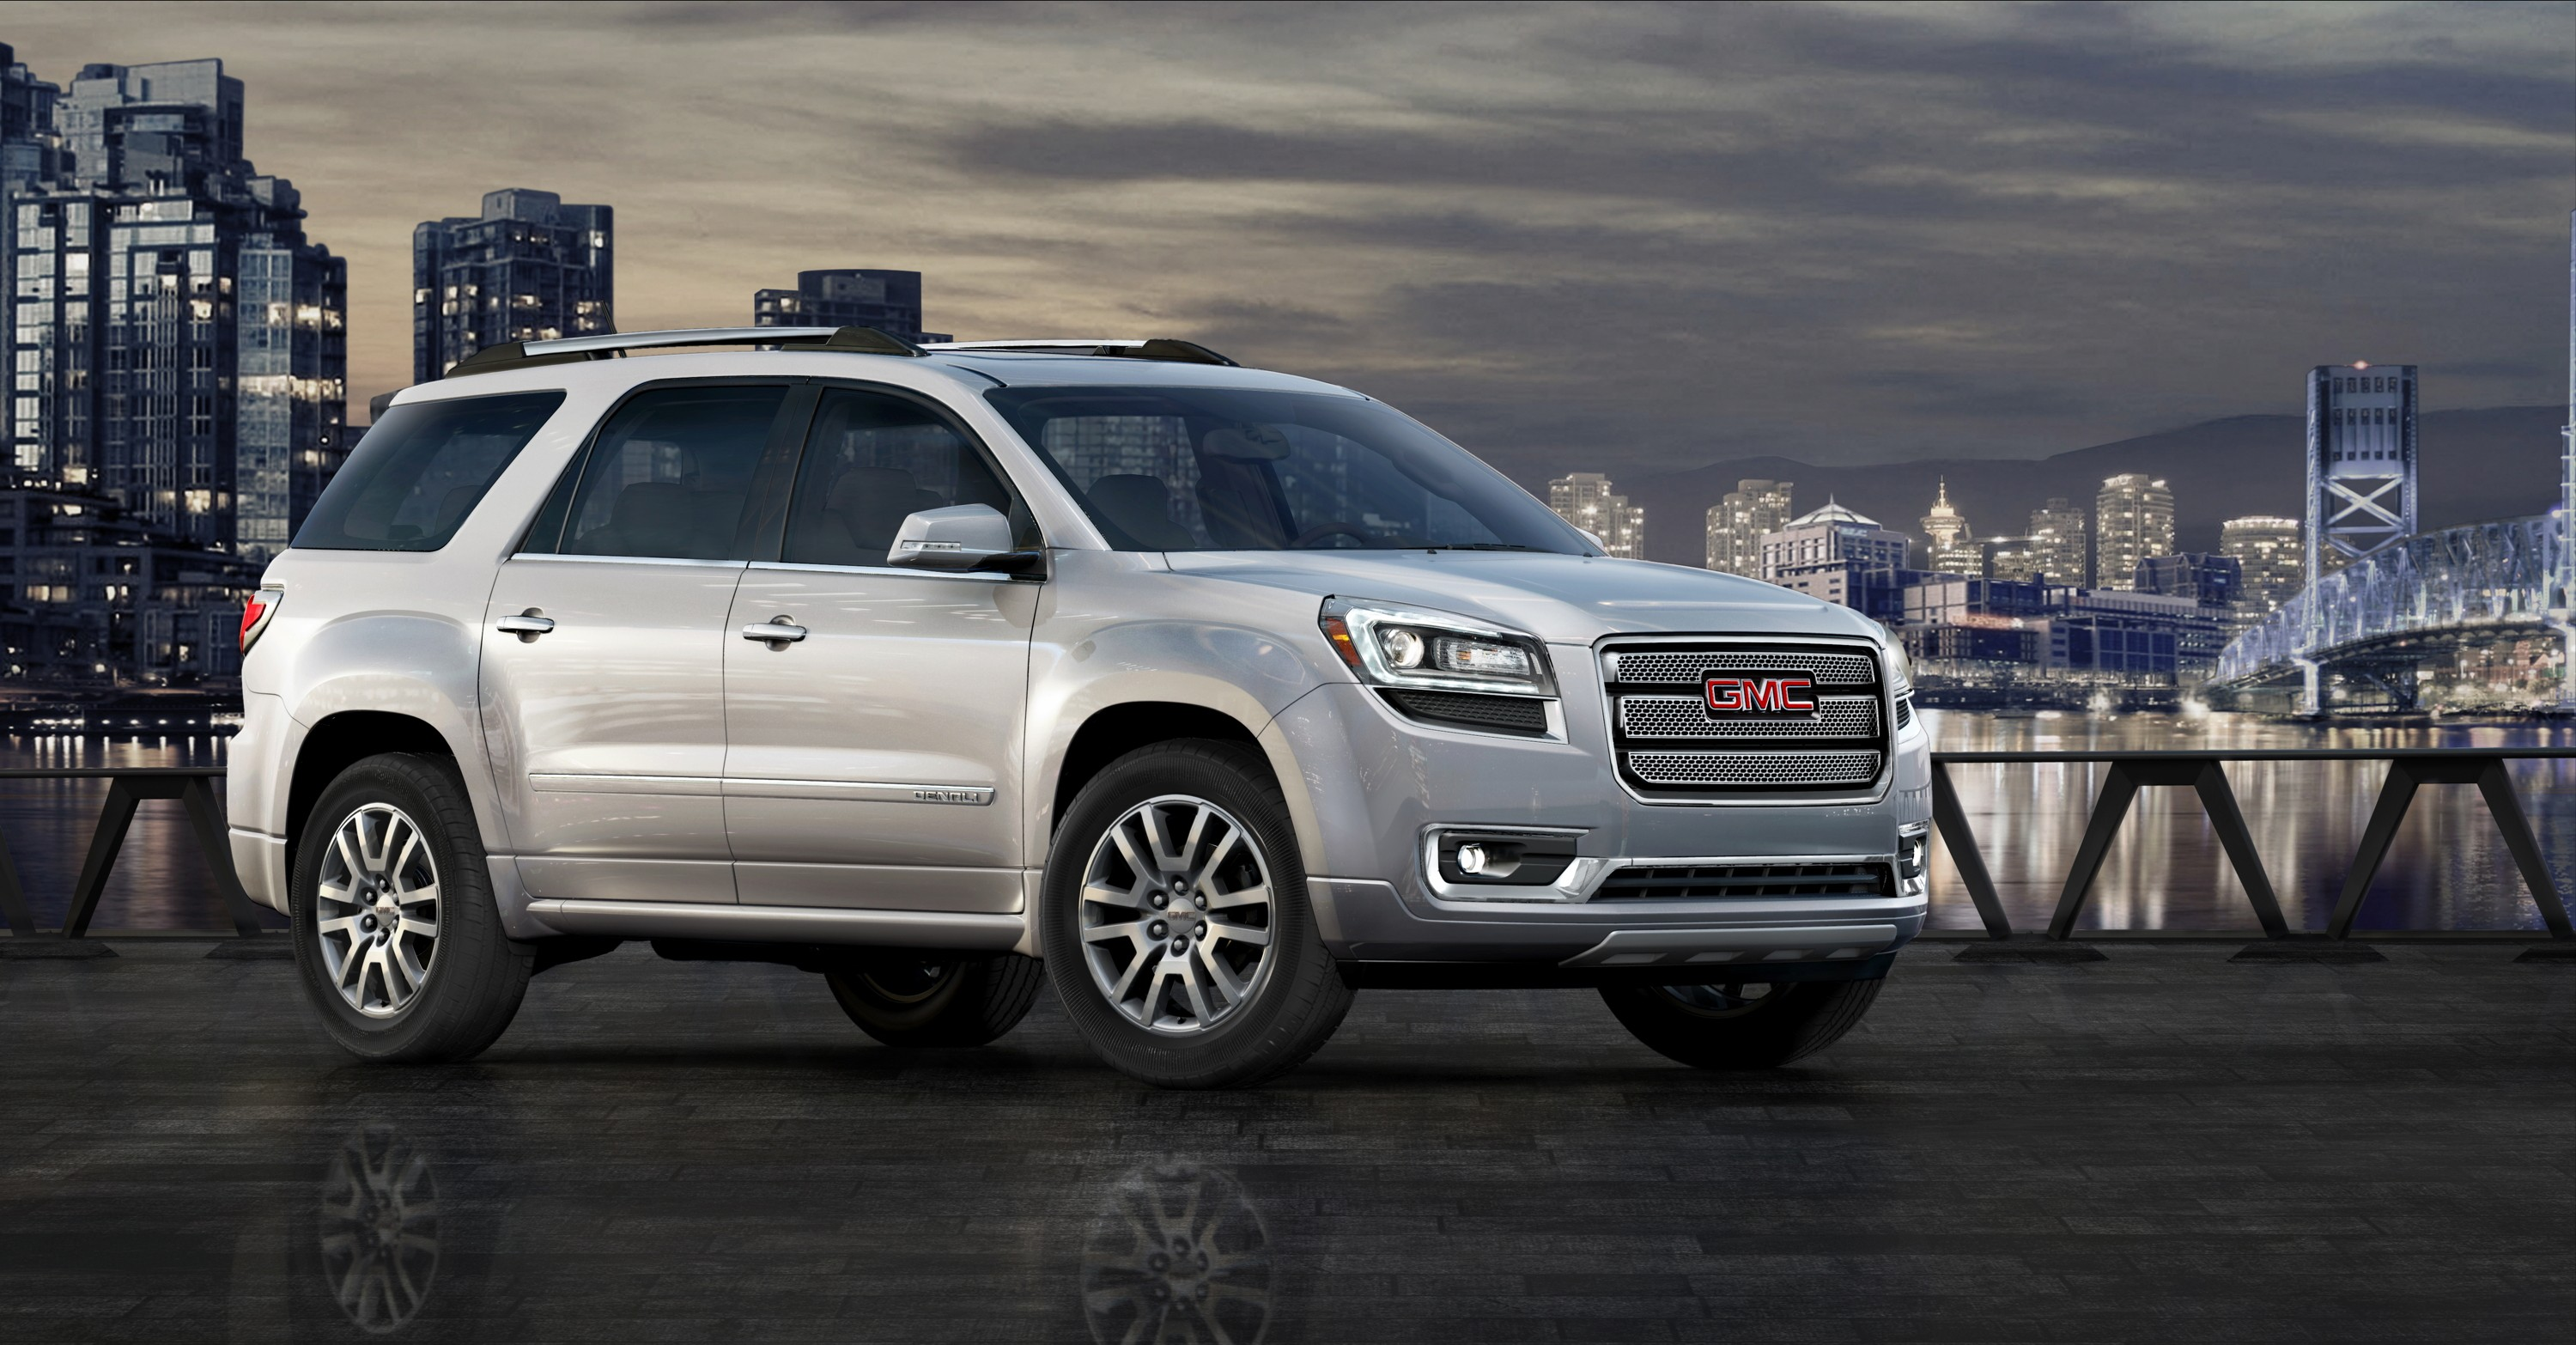 New Nissan Maxima >> 2016 GMC Acadia Introduced With OnStar 4G LTE - autoevolution